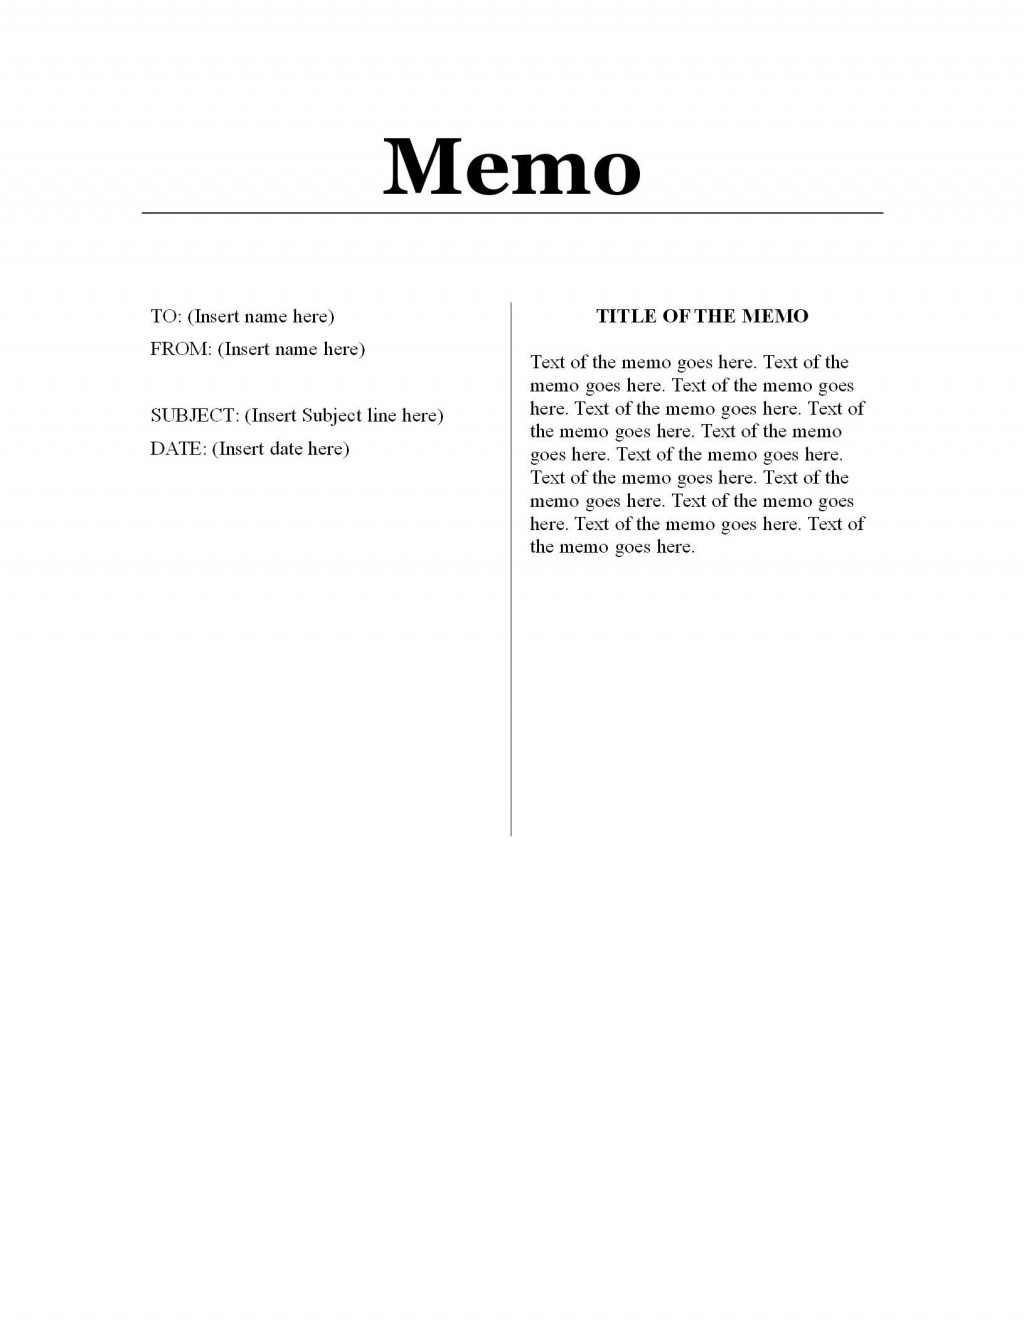 001 Simple Memo Template For Word High Resolution  Free Cash Sample 2013Large